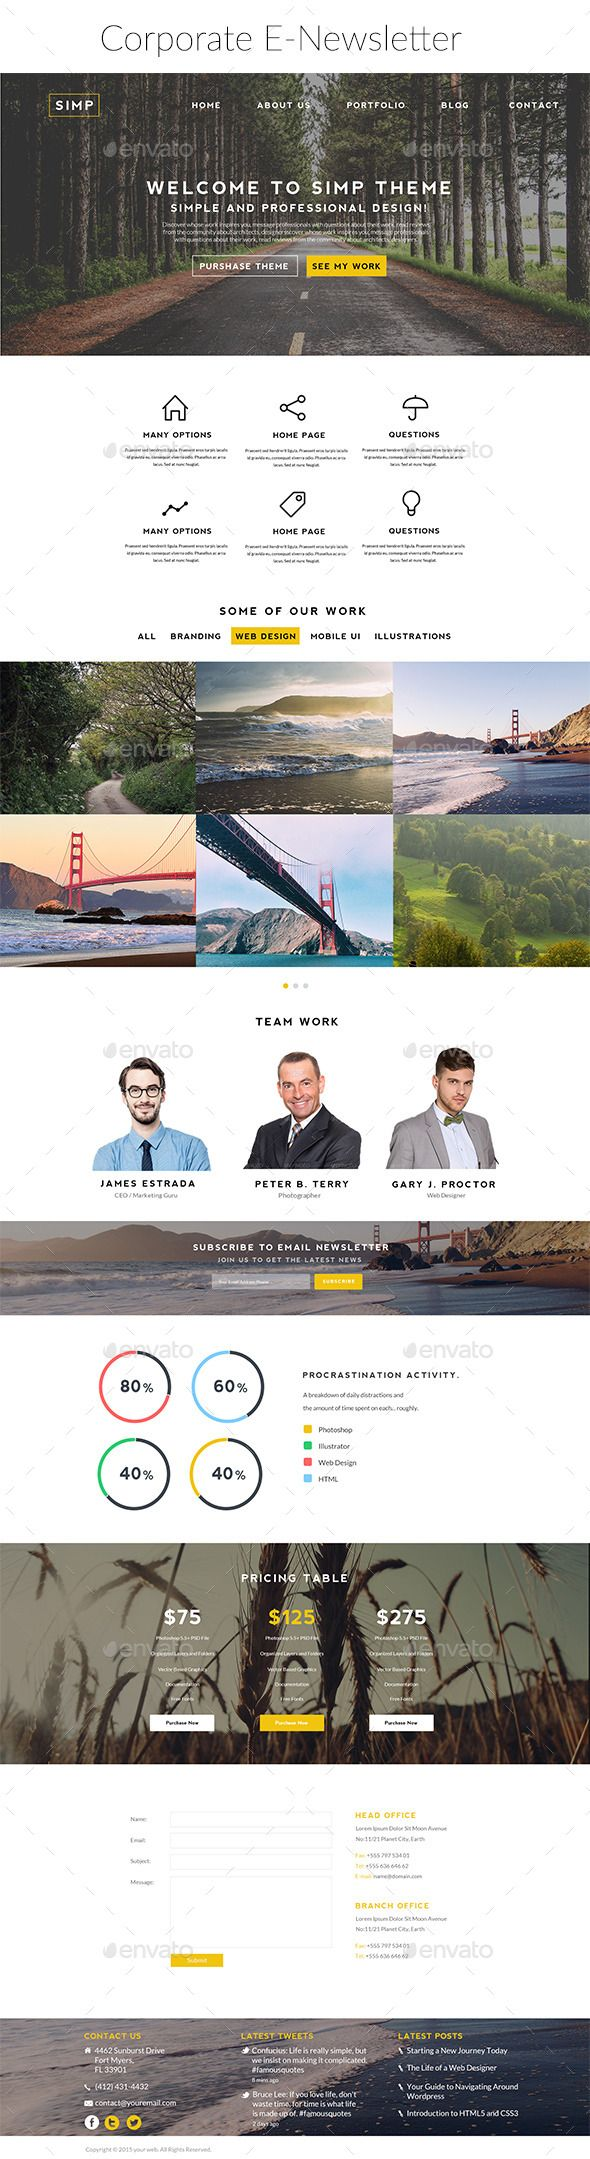 Corporate Newsletter Template Psd Download Here Http